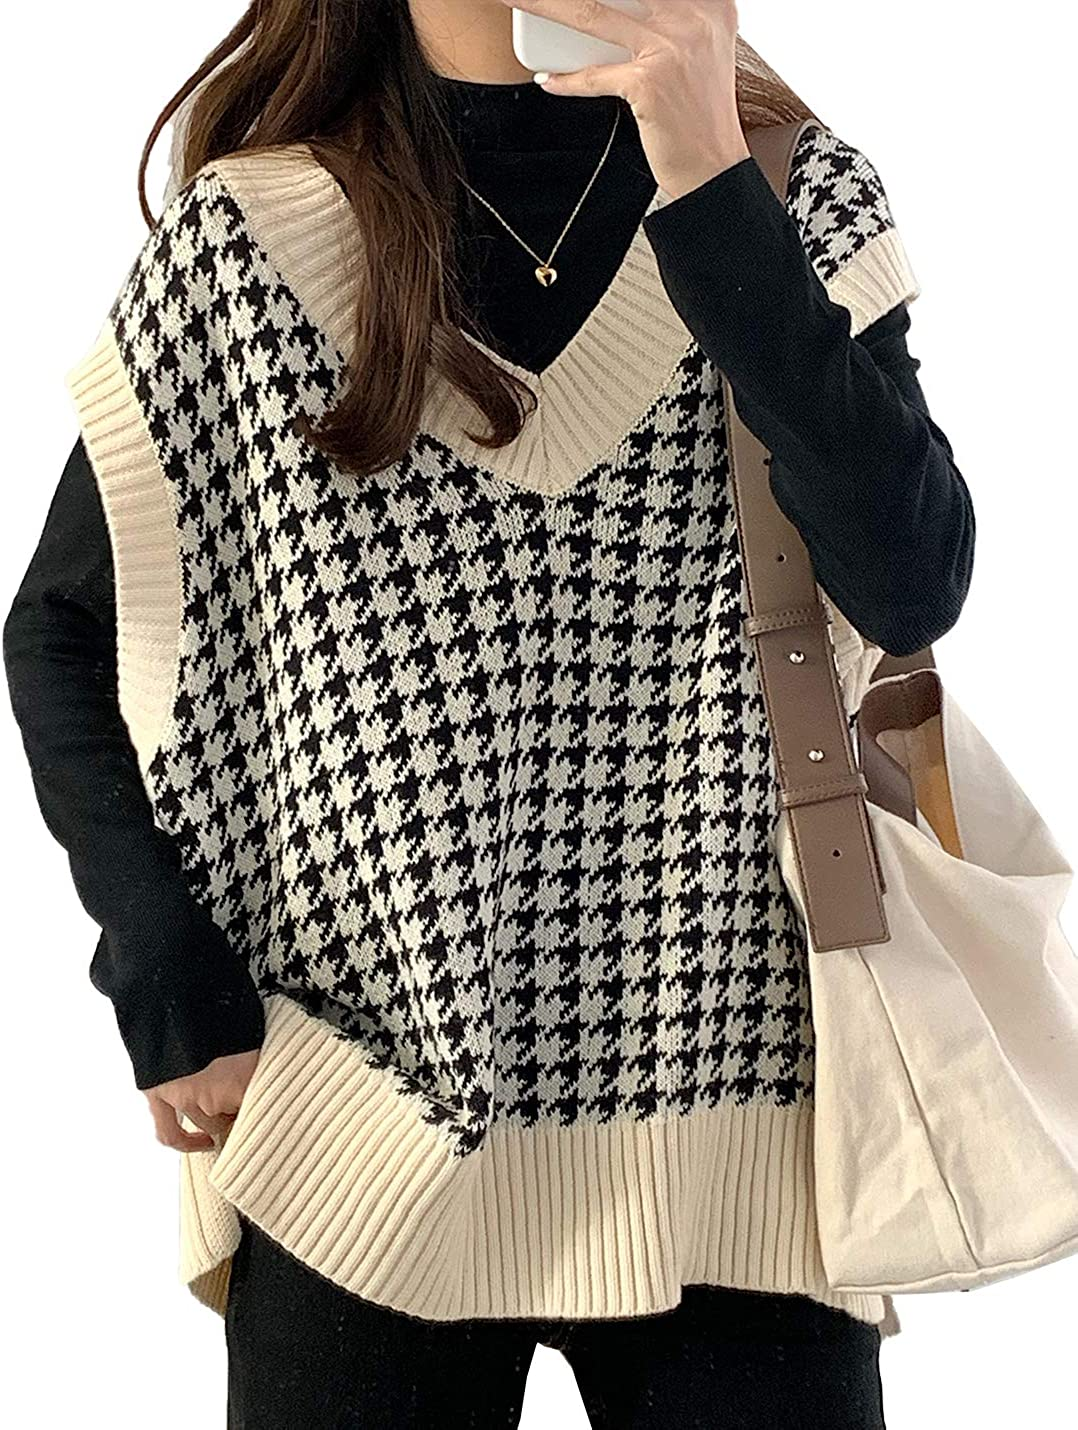 PEHMEA Women's Knitted Cotton V Neck Sleeveless Houndstooth Sweater Vest Casual Pullover Waistcoat Tops